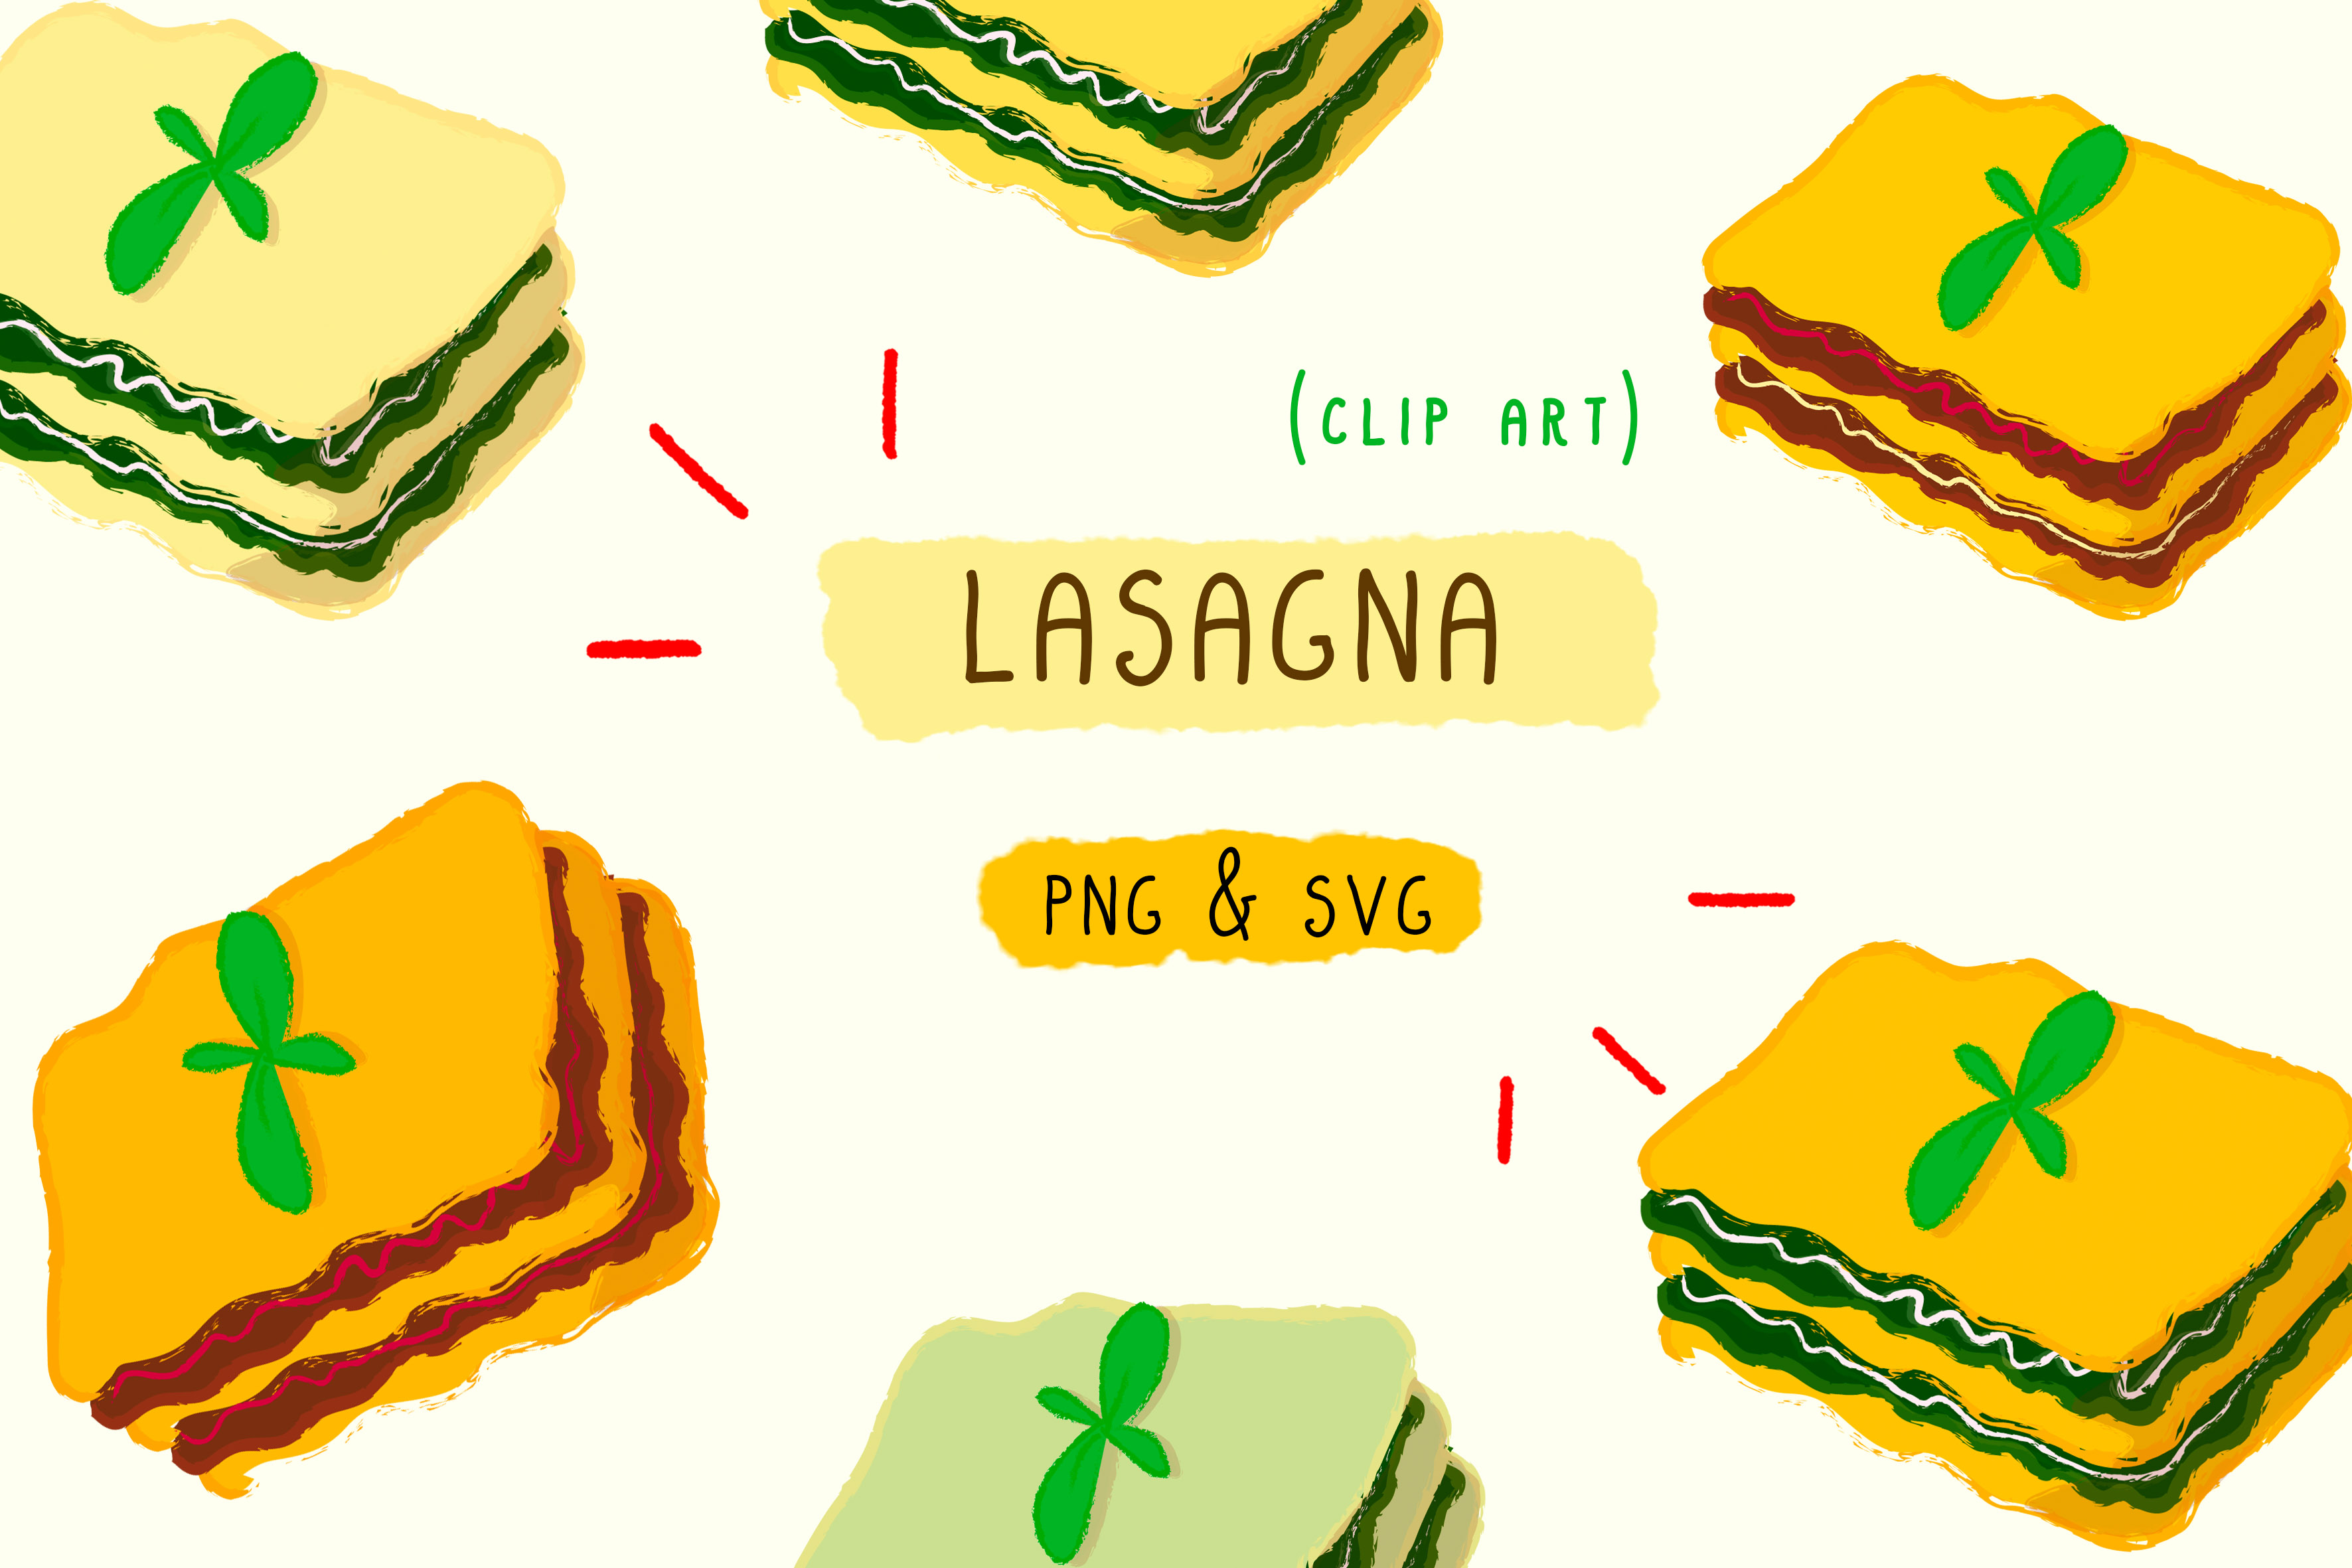 Download Free Lasagna Spinach Meat Svg Png Food Graphic By Inkclouddesign Creative Fabrica for Cricut Explore, Silhouette and other cutting machines.